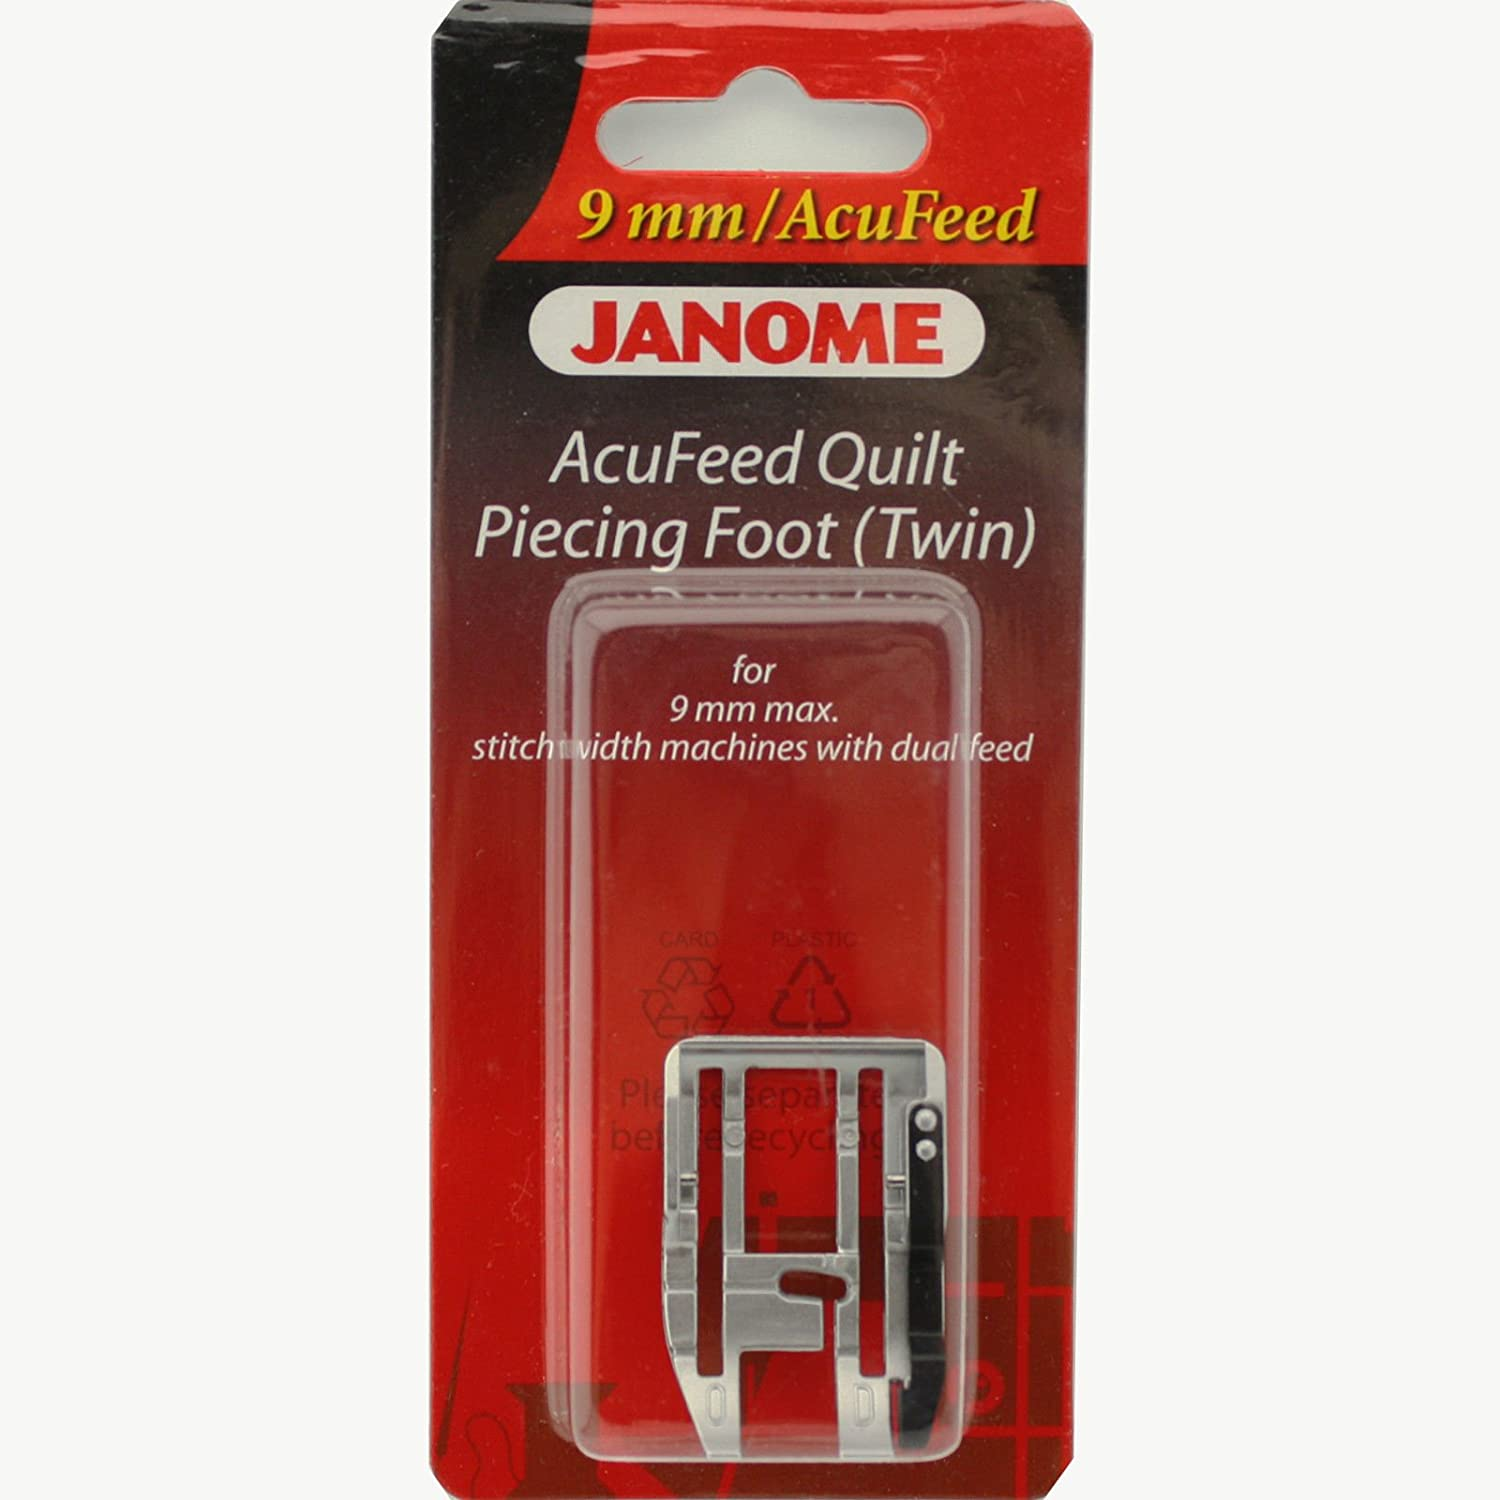 For #202125004 9mm max with Dual Feed Twin Janome AcuFeed Quilt Piecing Foot